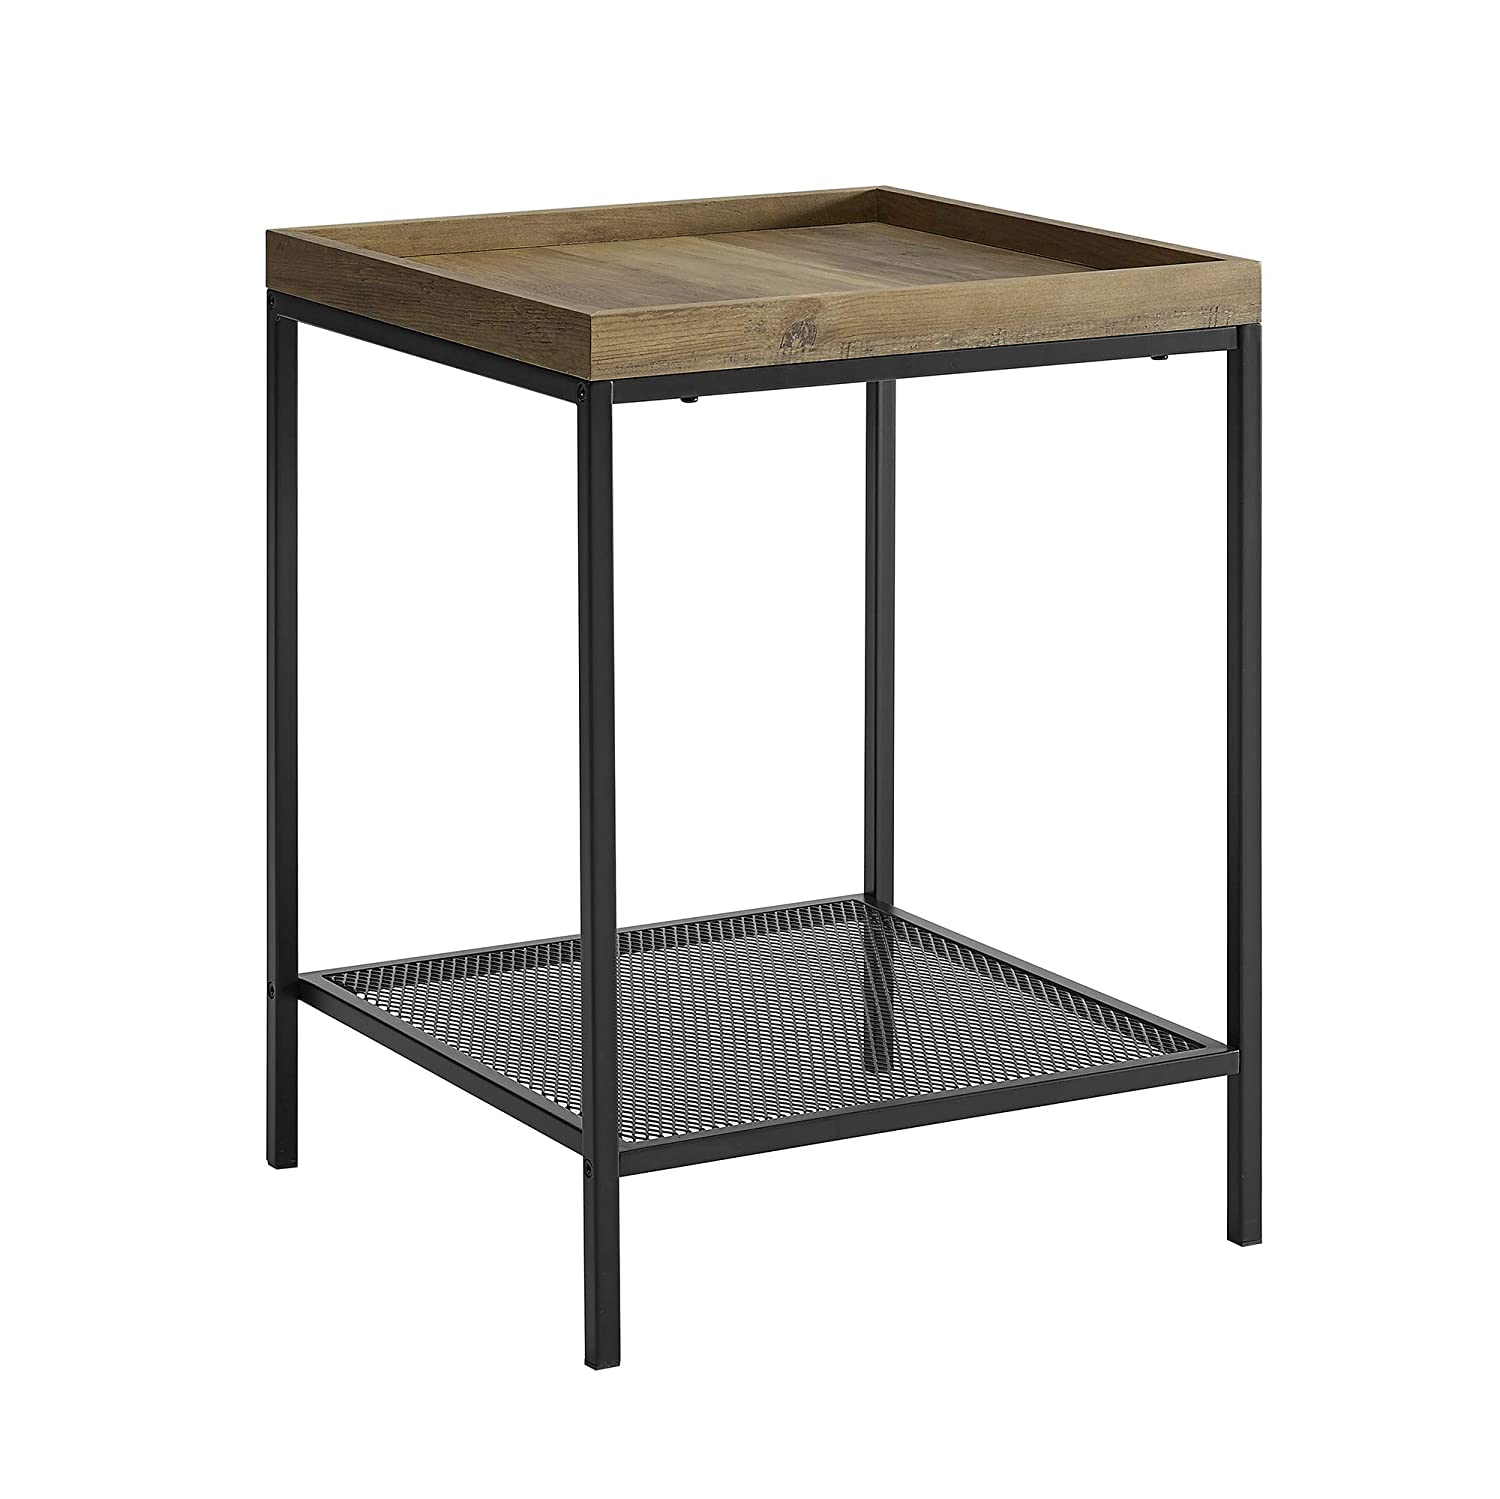 WE Furniture AZF18EMISTRO Industrial Farmhouse Square Side End Accent Table Living Room, 18 Inch, Brown Reclaimed Barnwood